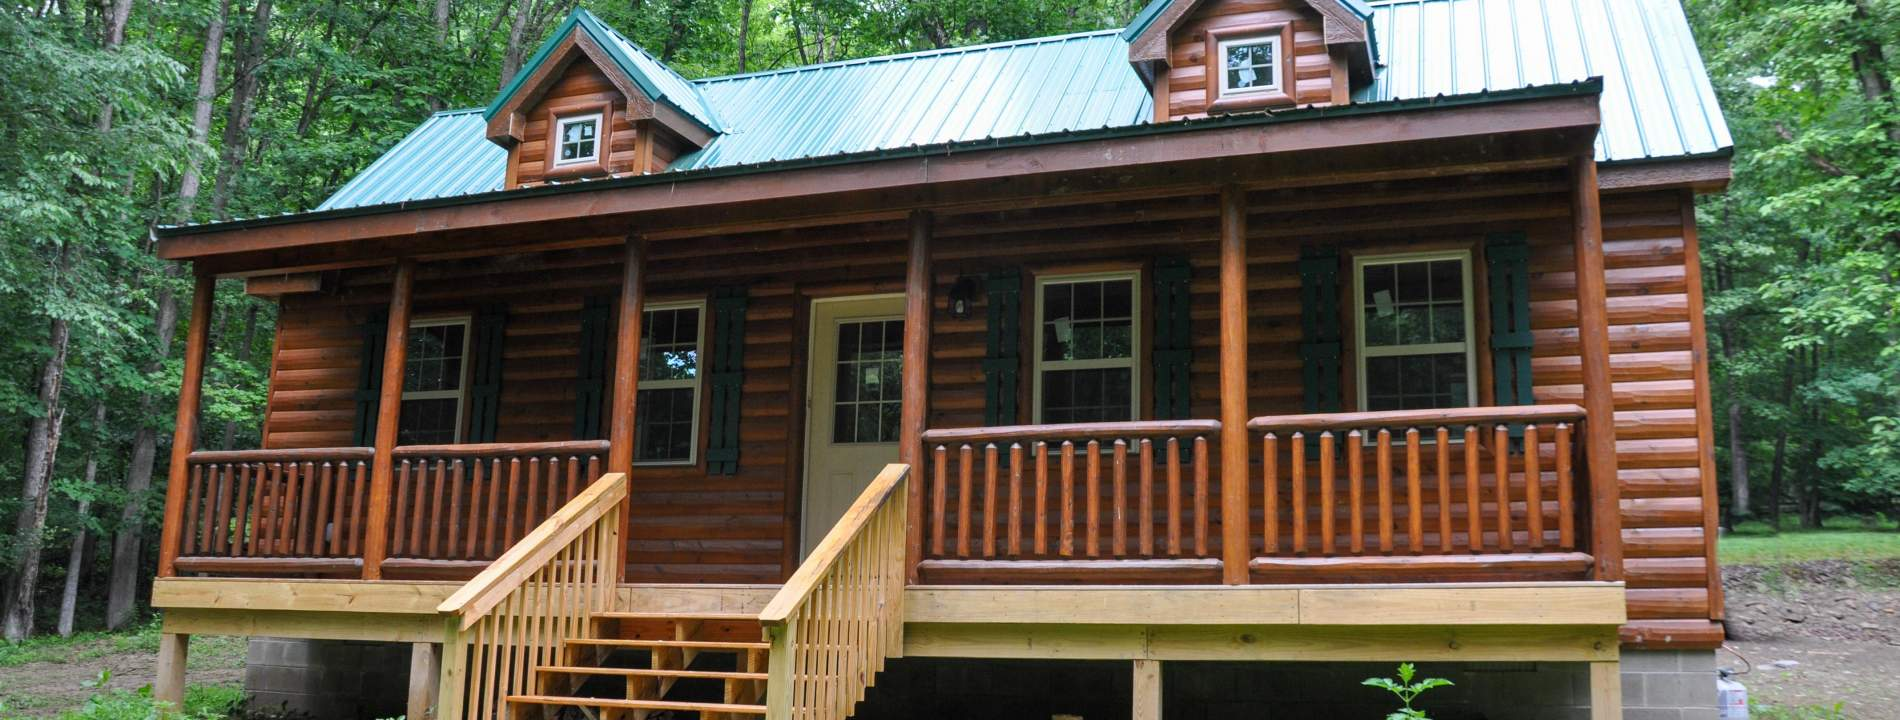 The Plymouth Cabin single wide modular homes